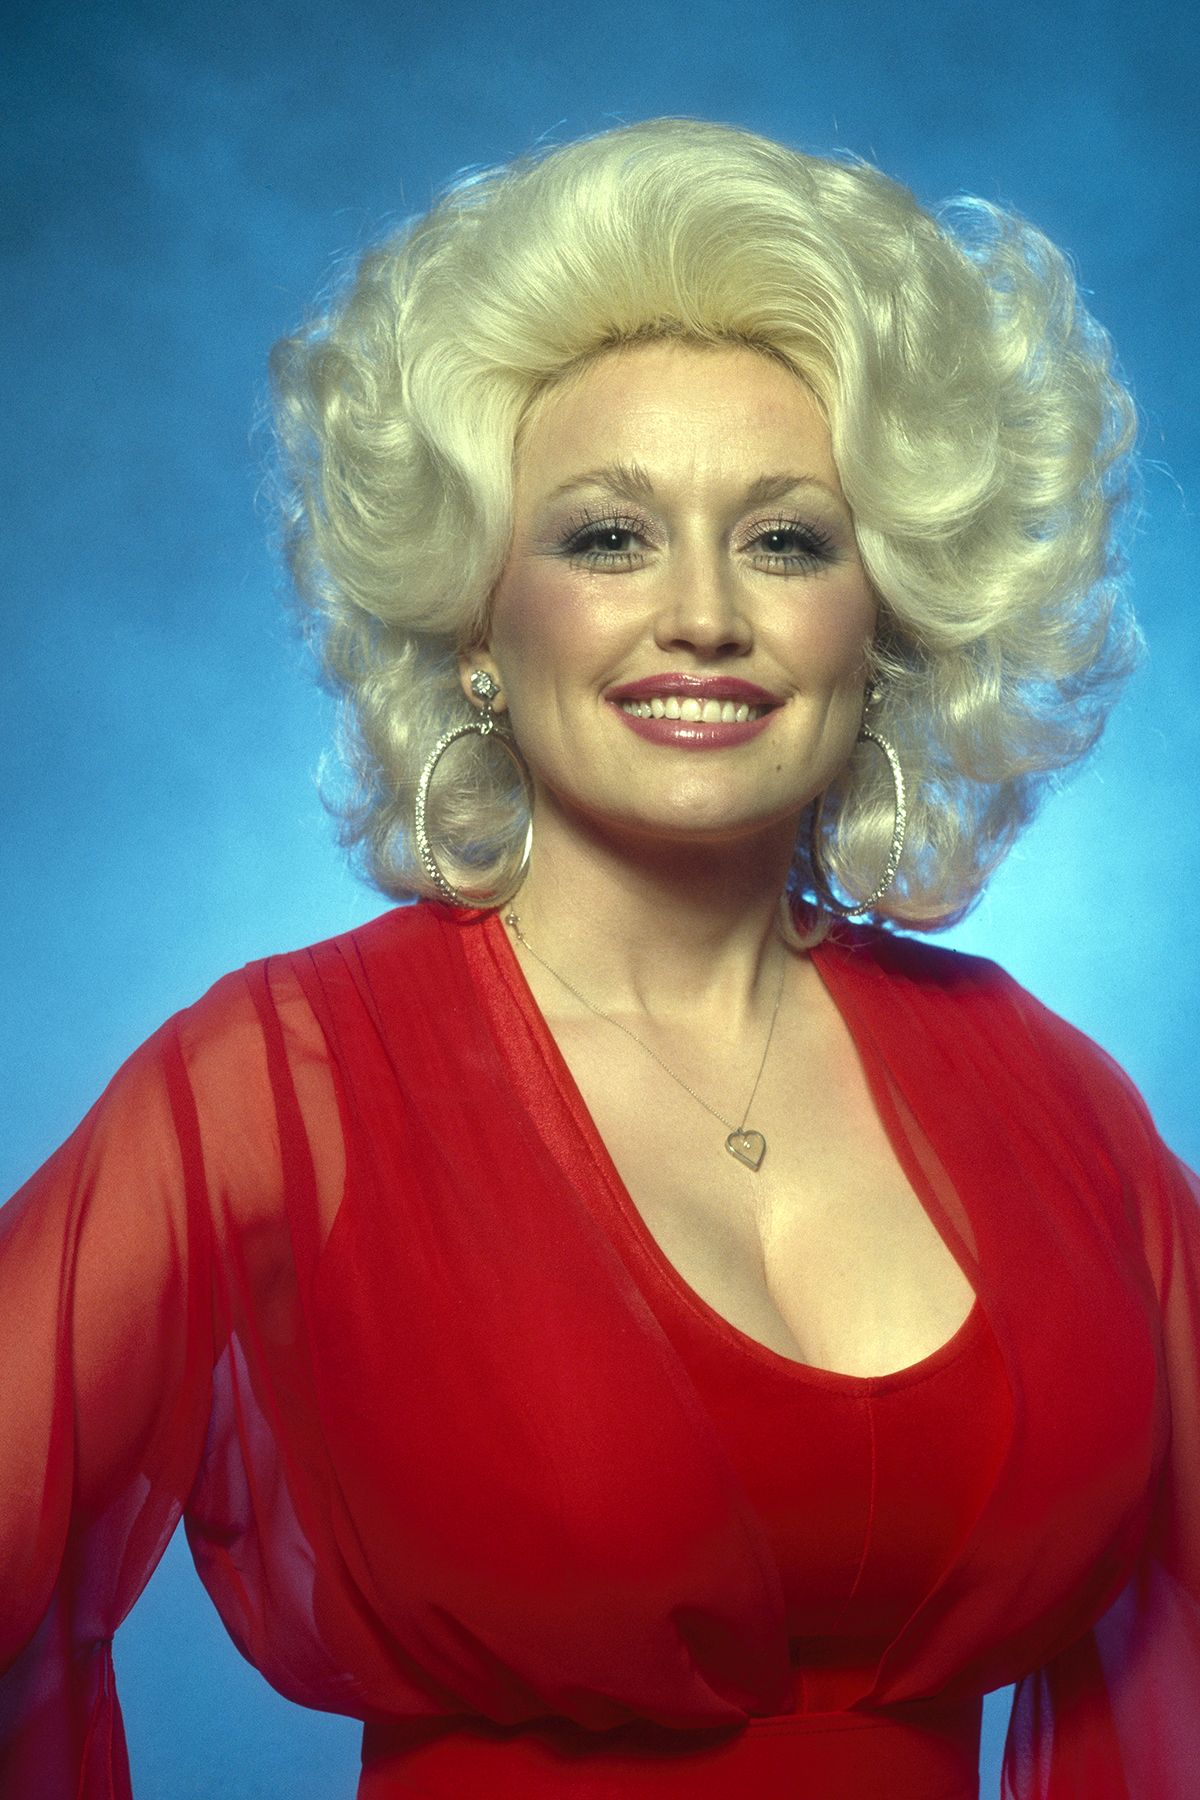 dolly parton - photo #32